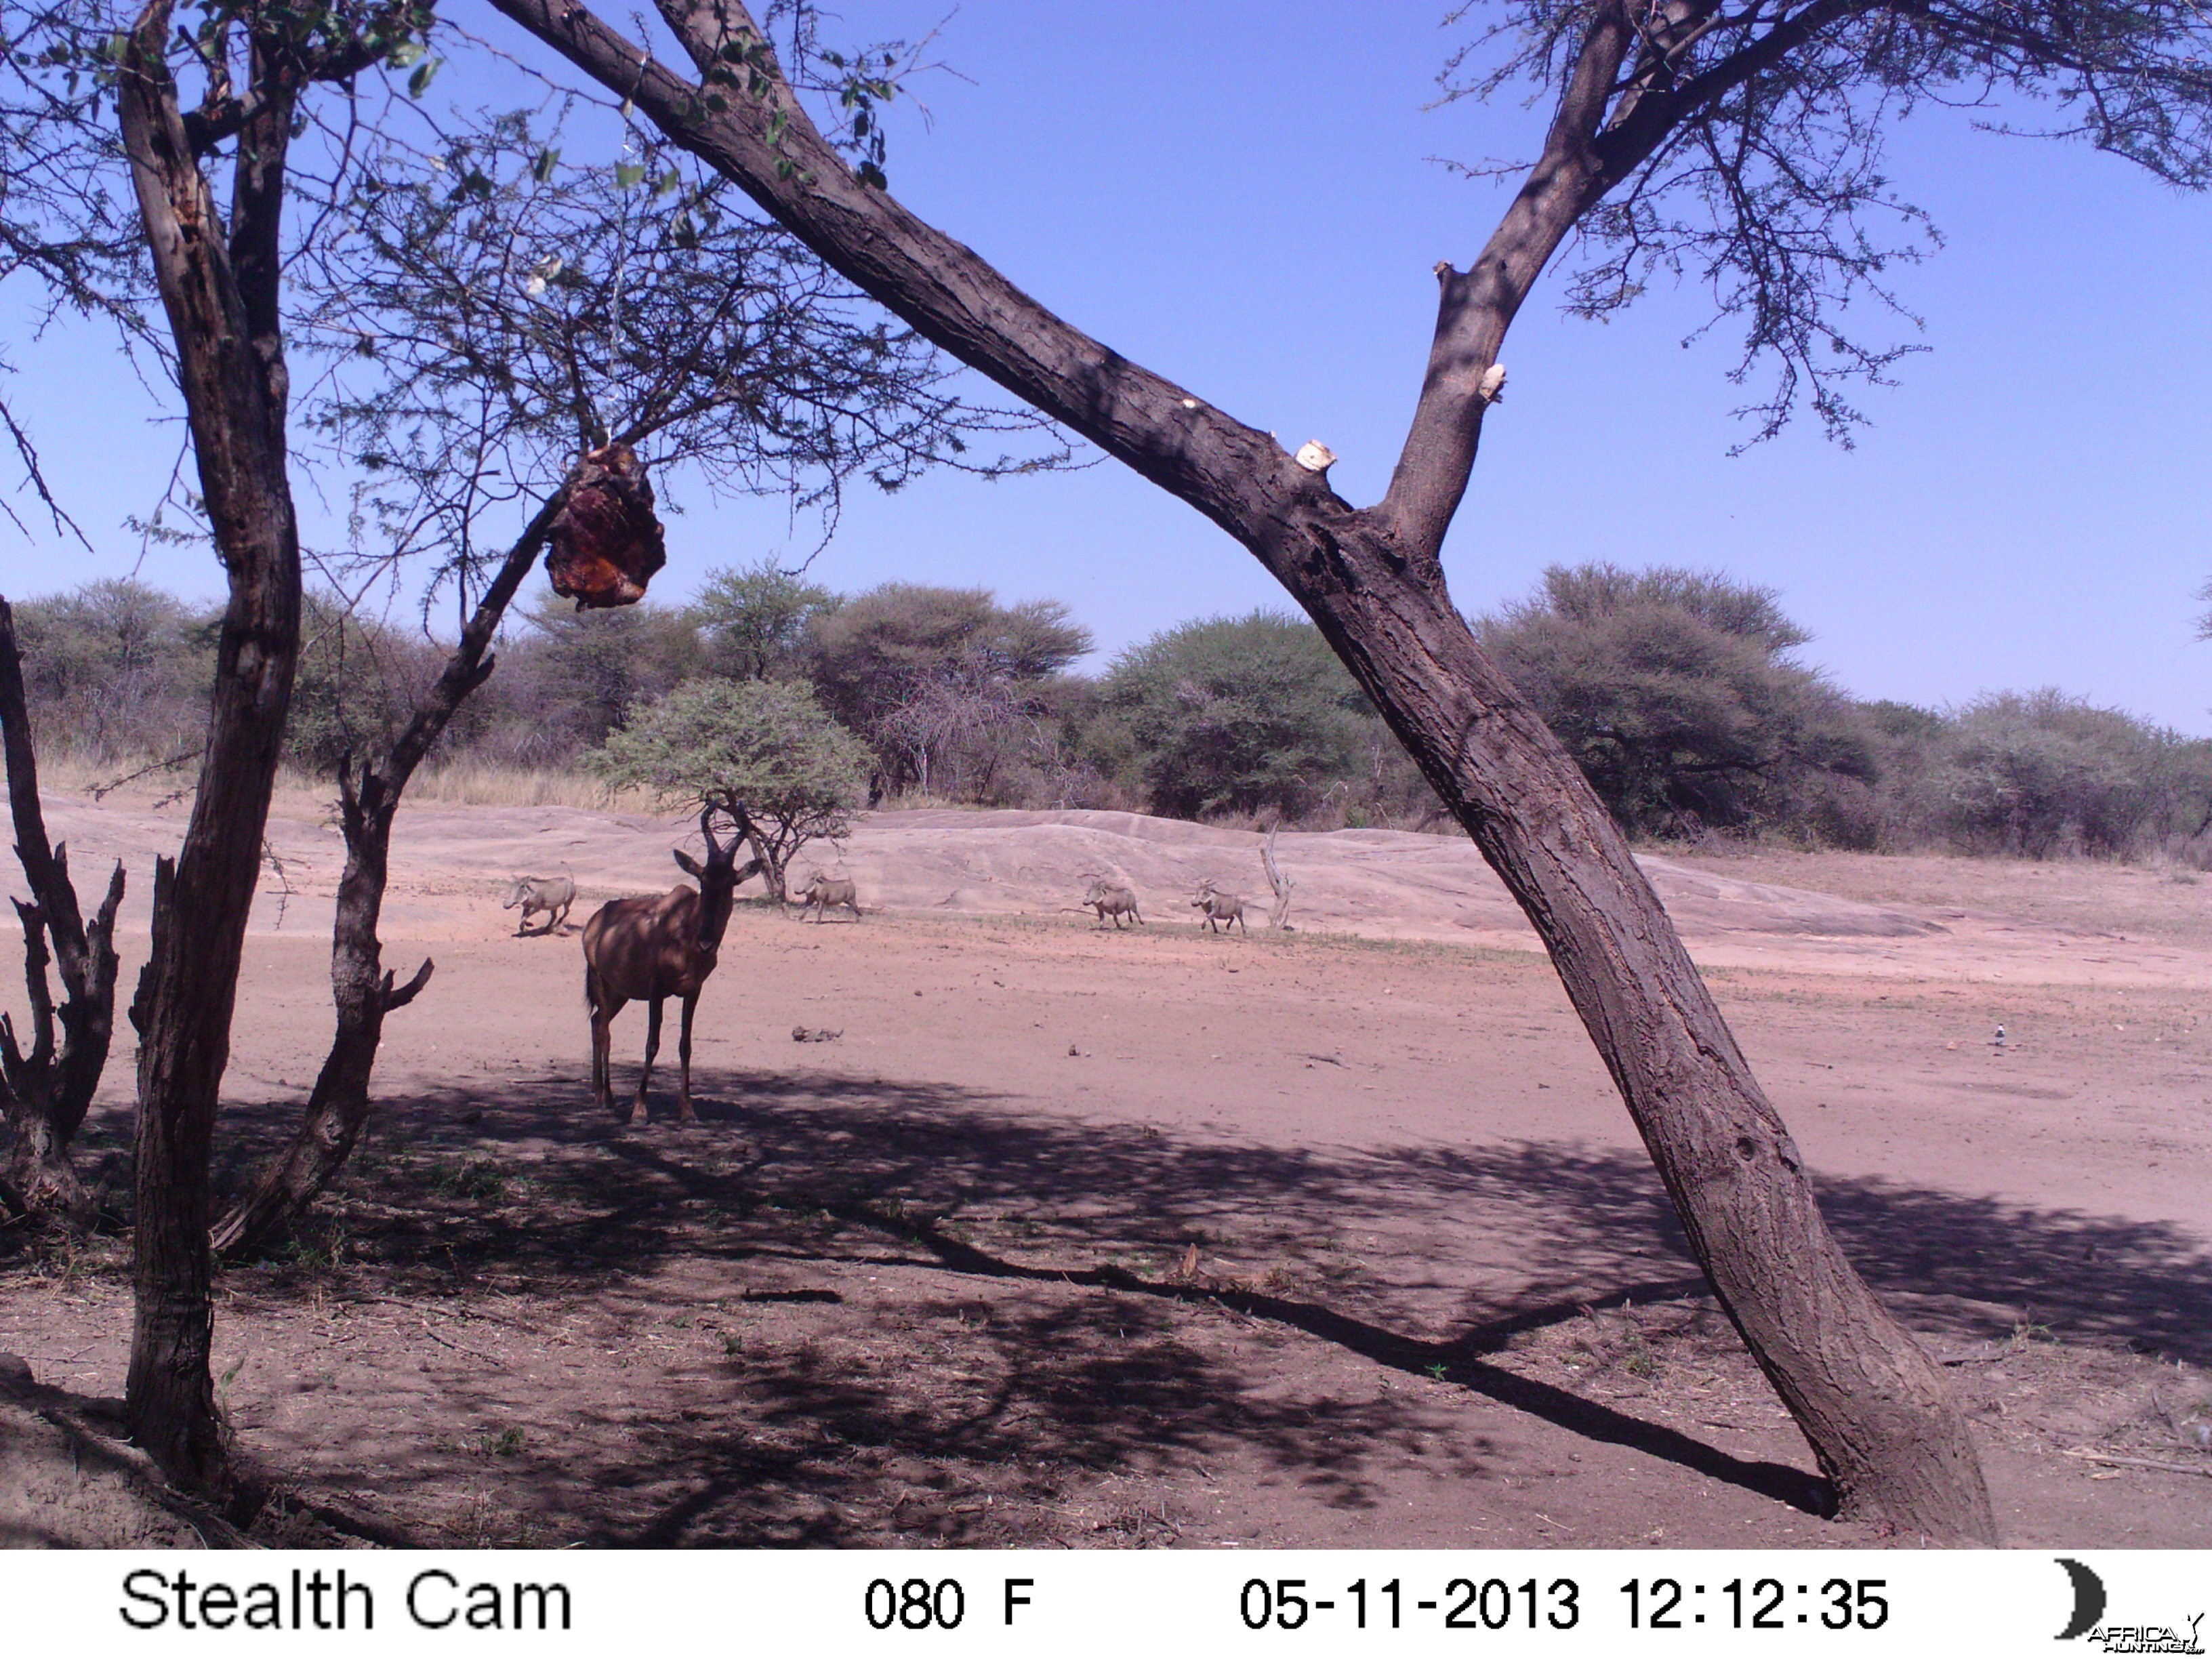 Red Hartebeest Trail Camera